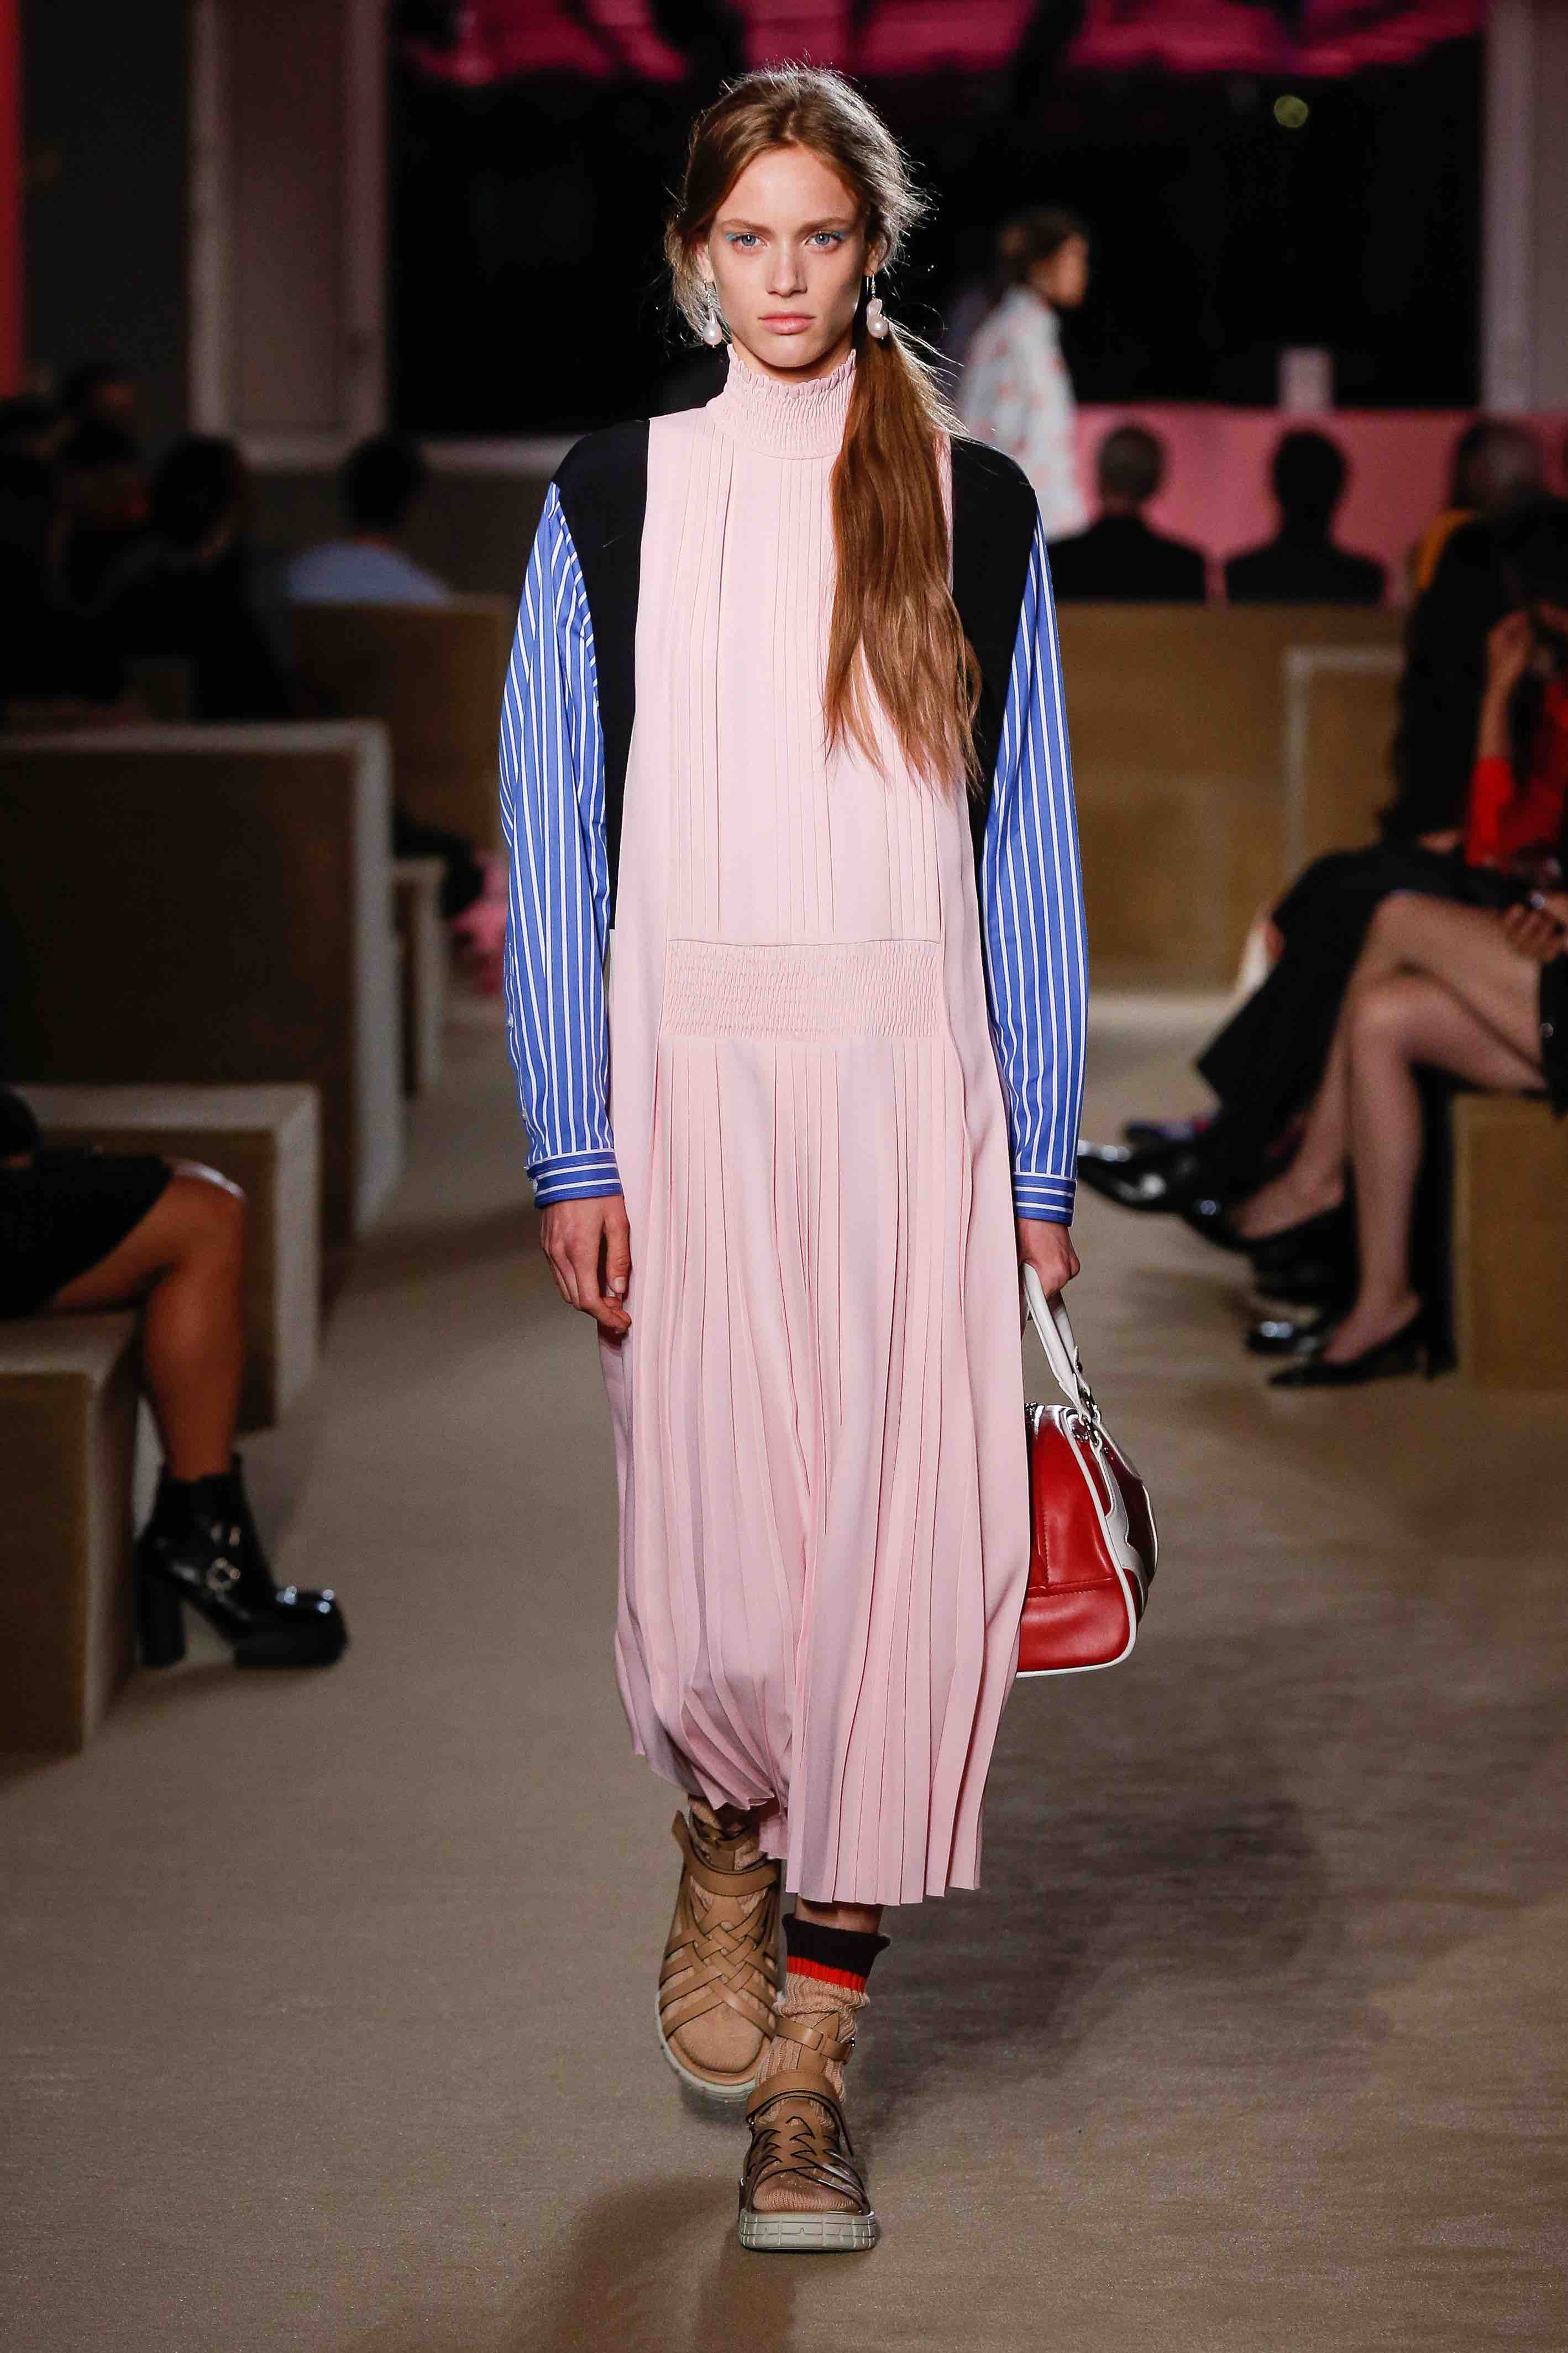 prada resort 2020 pale pink dress